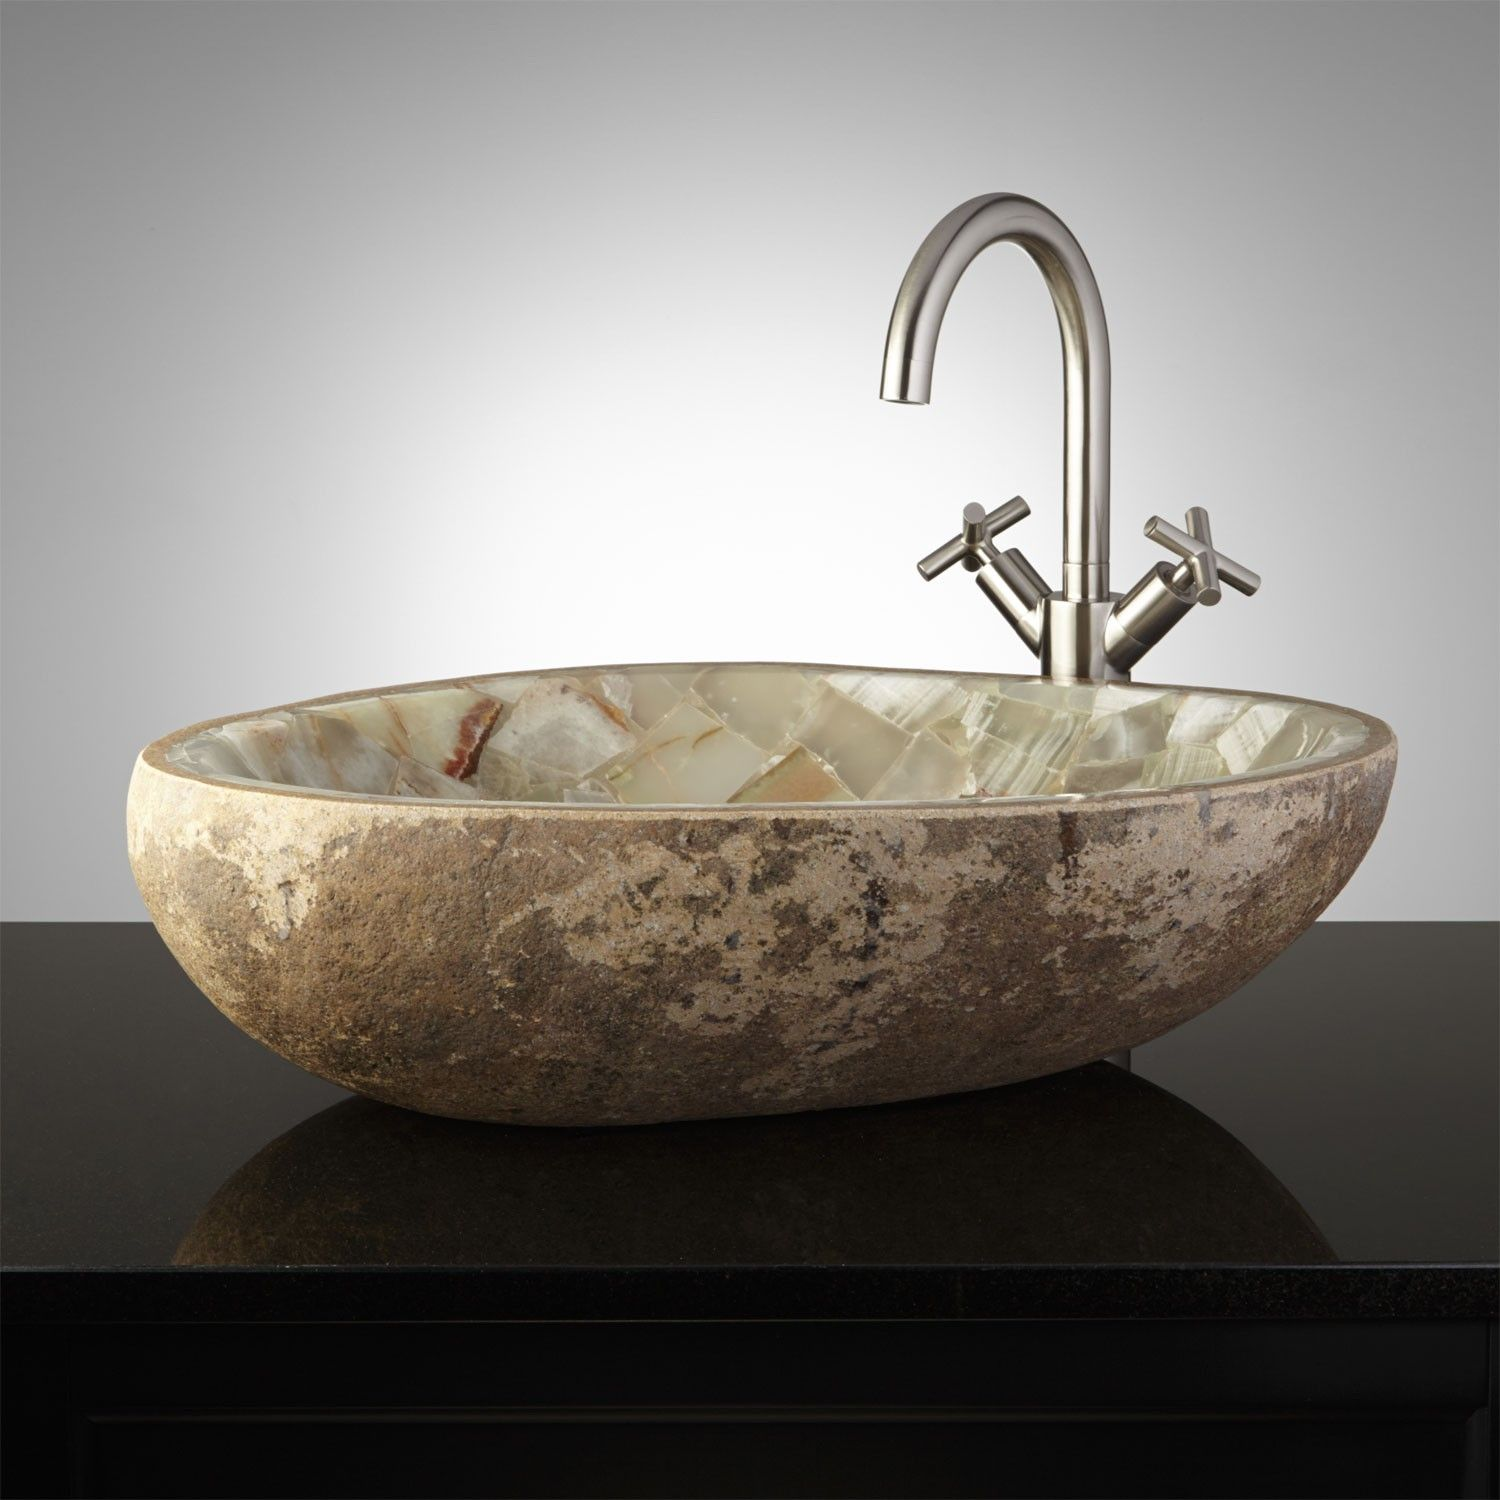 Green Onyx Mosaic Natural River Stone Vessel Sink River Stones